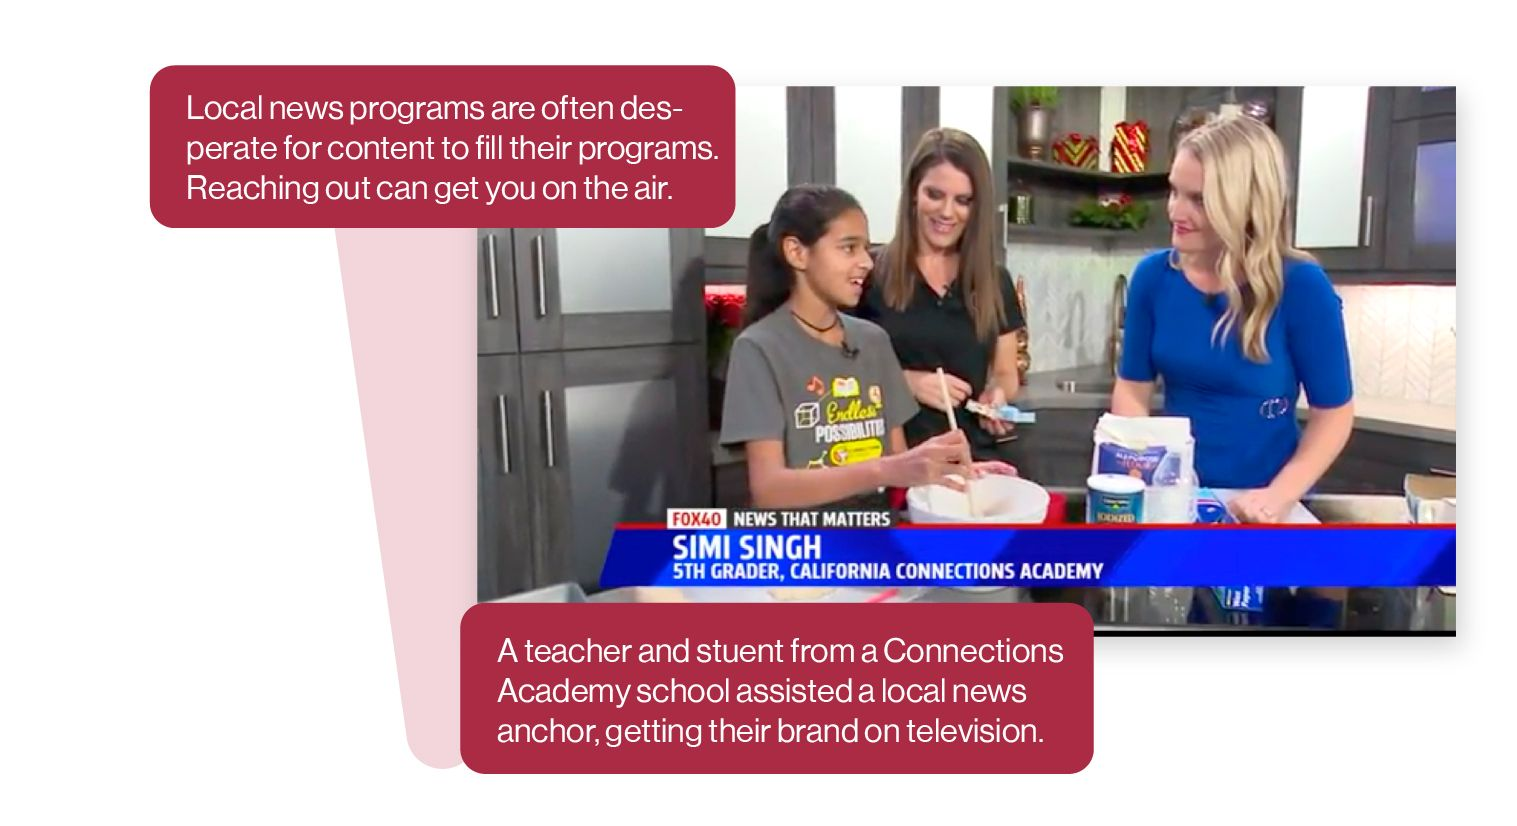 Image: Screen capture from a Connections Academy spot on a local TV news station, featuring a Connections student and their teacher talking with the news anchor. Local news programs are often looking for content, so reaching out can get you on the air.